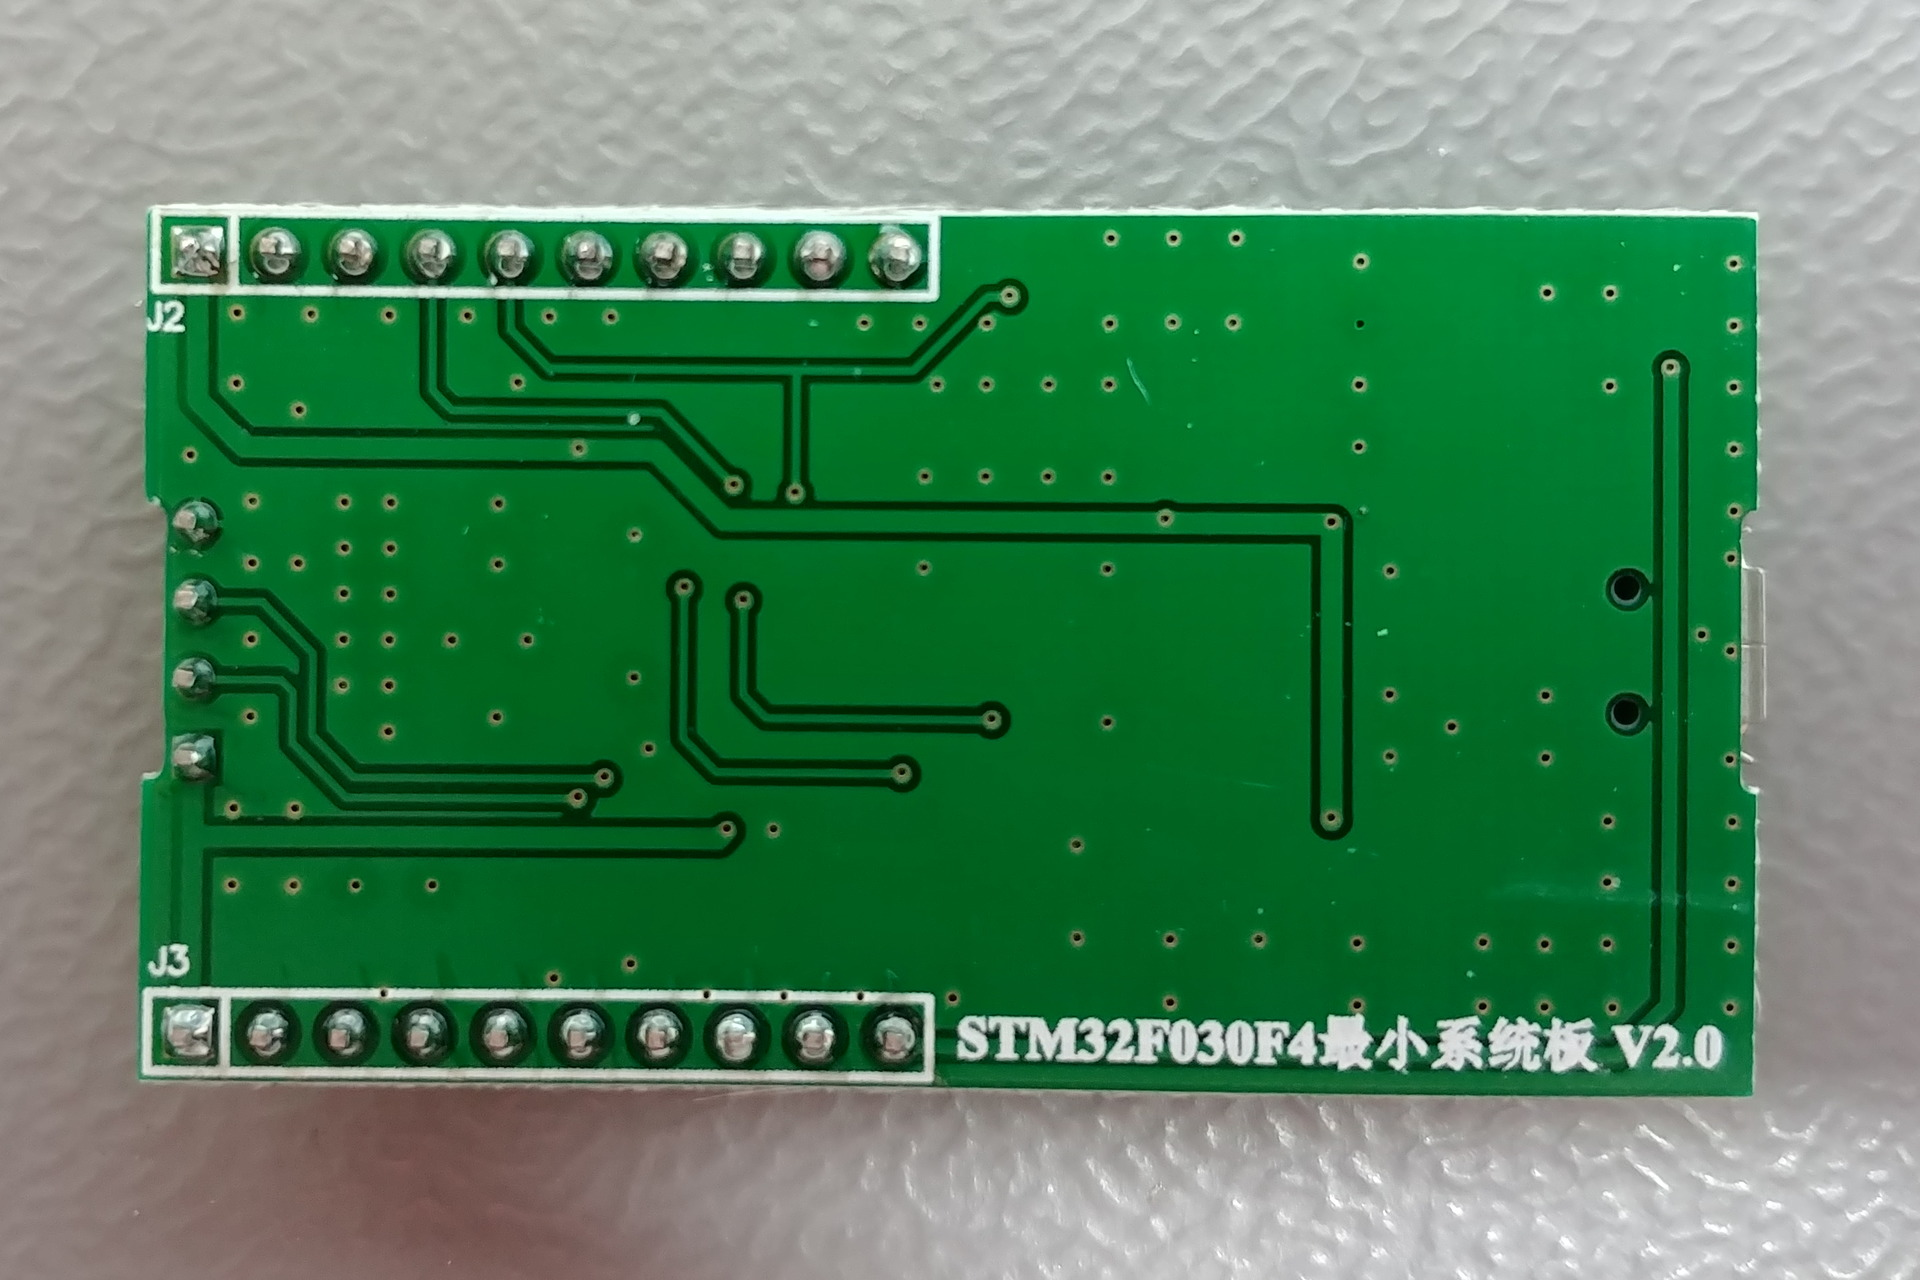 STM32F030F4 最小系统板 V2.0 (Minimal System Board): Bottom view